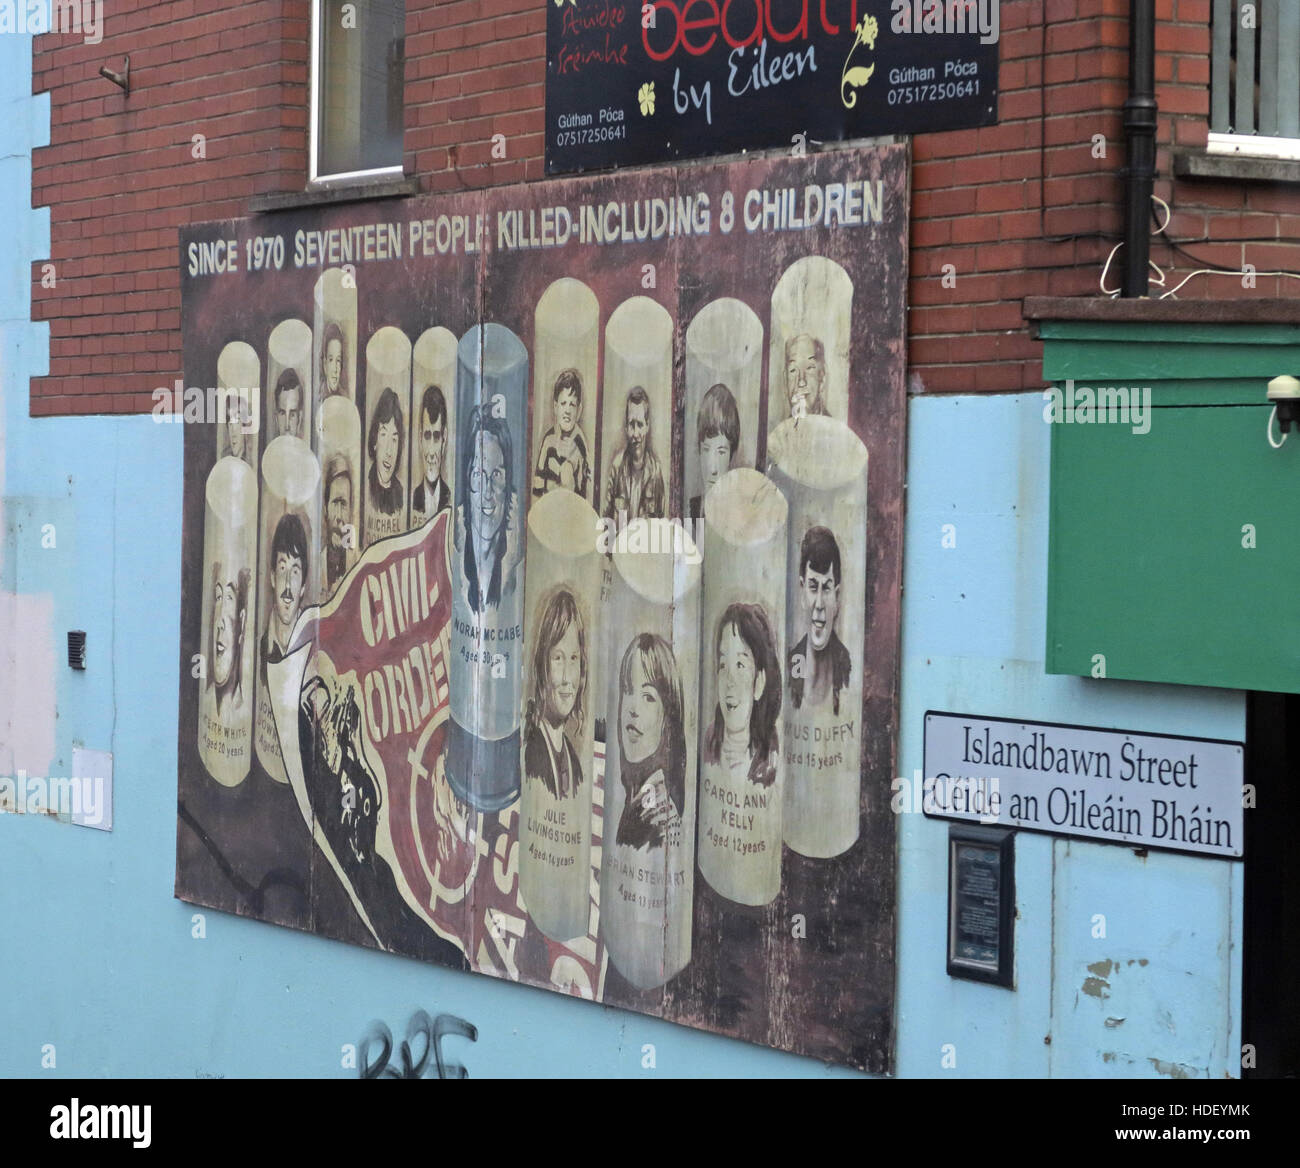 Civil Order mural,West Belfast,Northern Ireland, UK - Stock Image